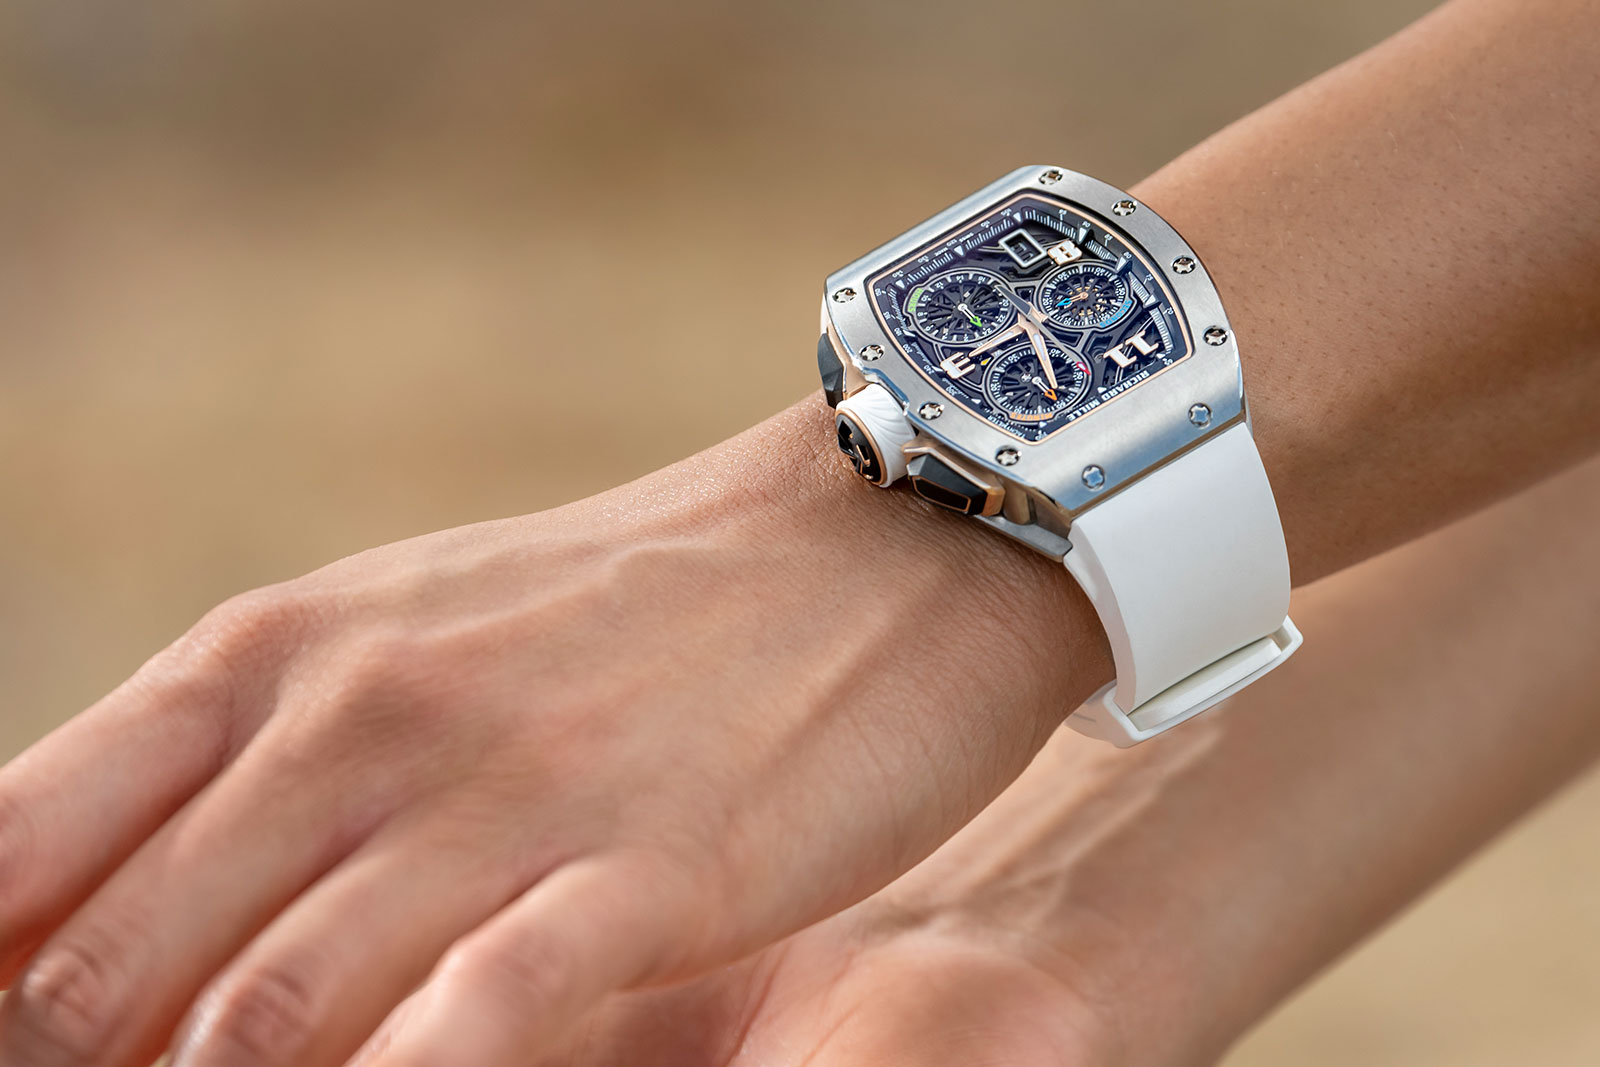 Richard Mille Takes A Leap Into The Future With The New Rm 72 01 Lifestyle In House Chronograph